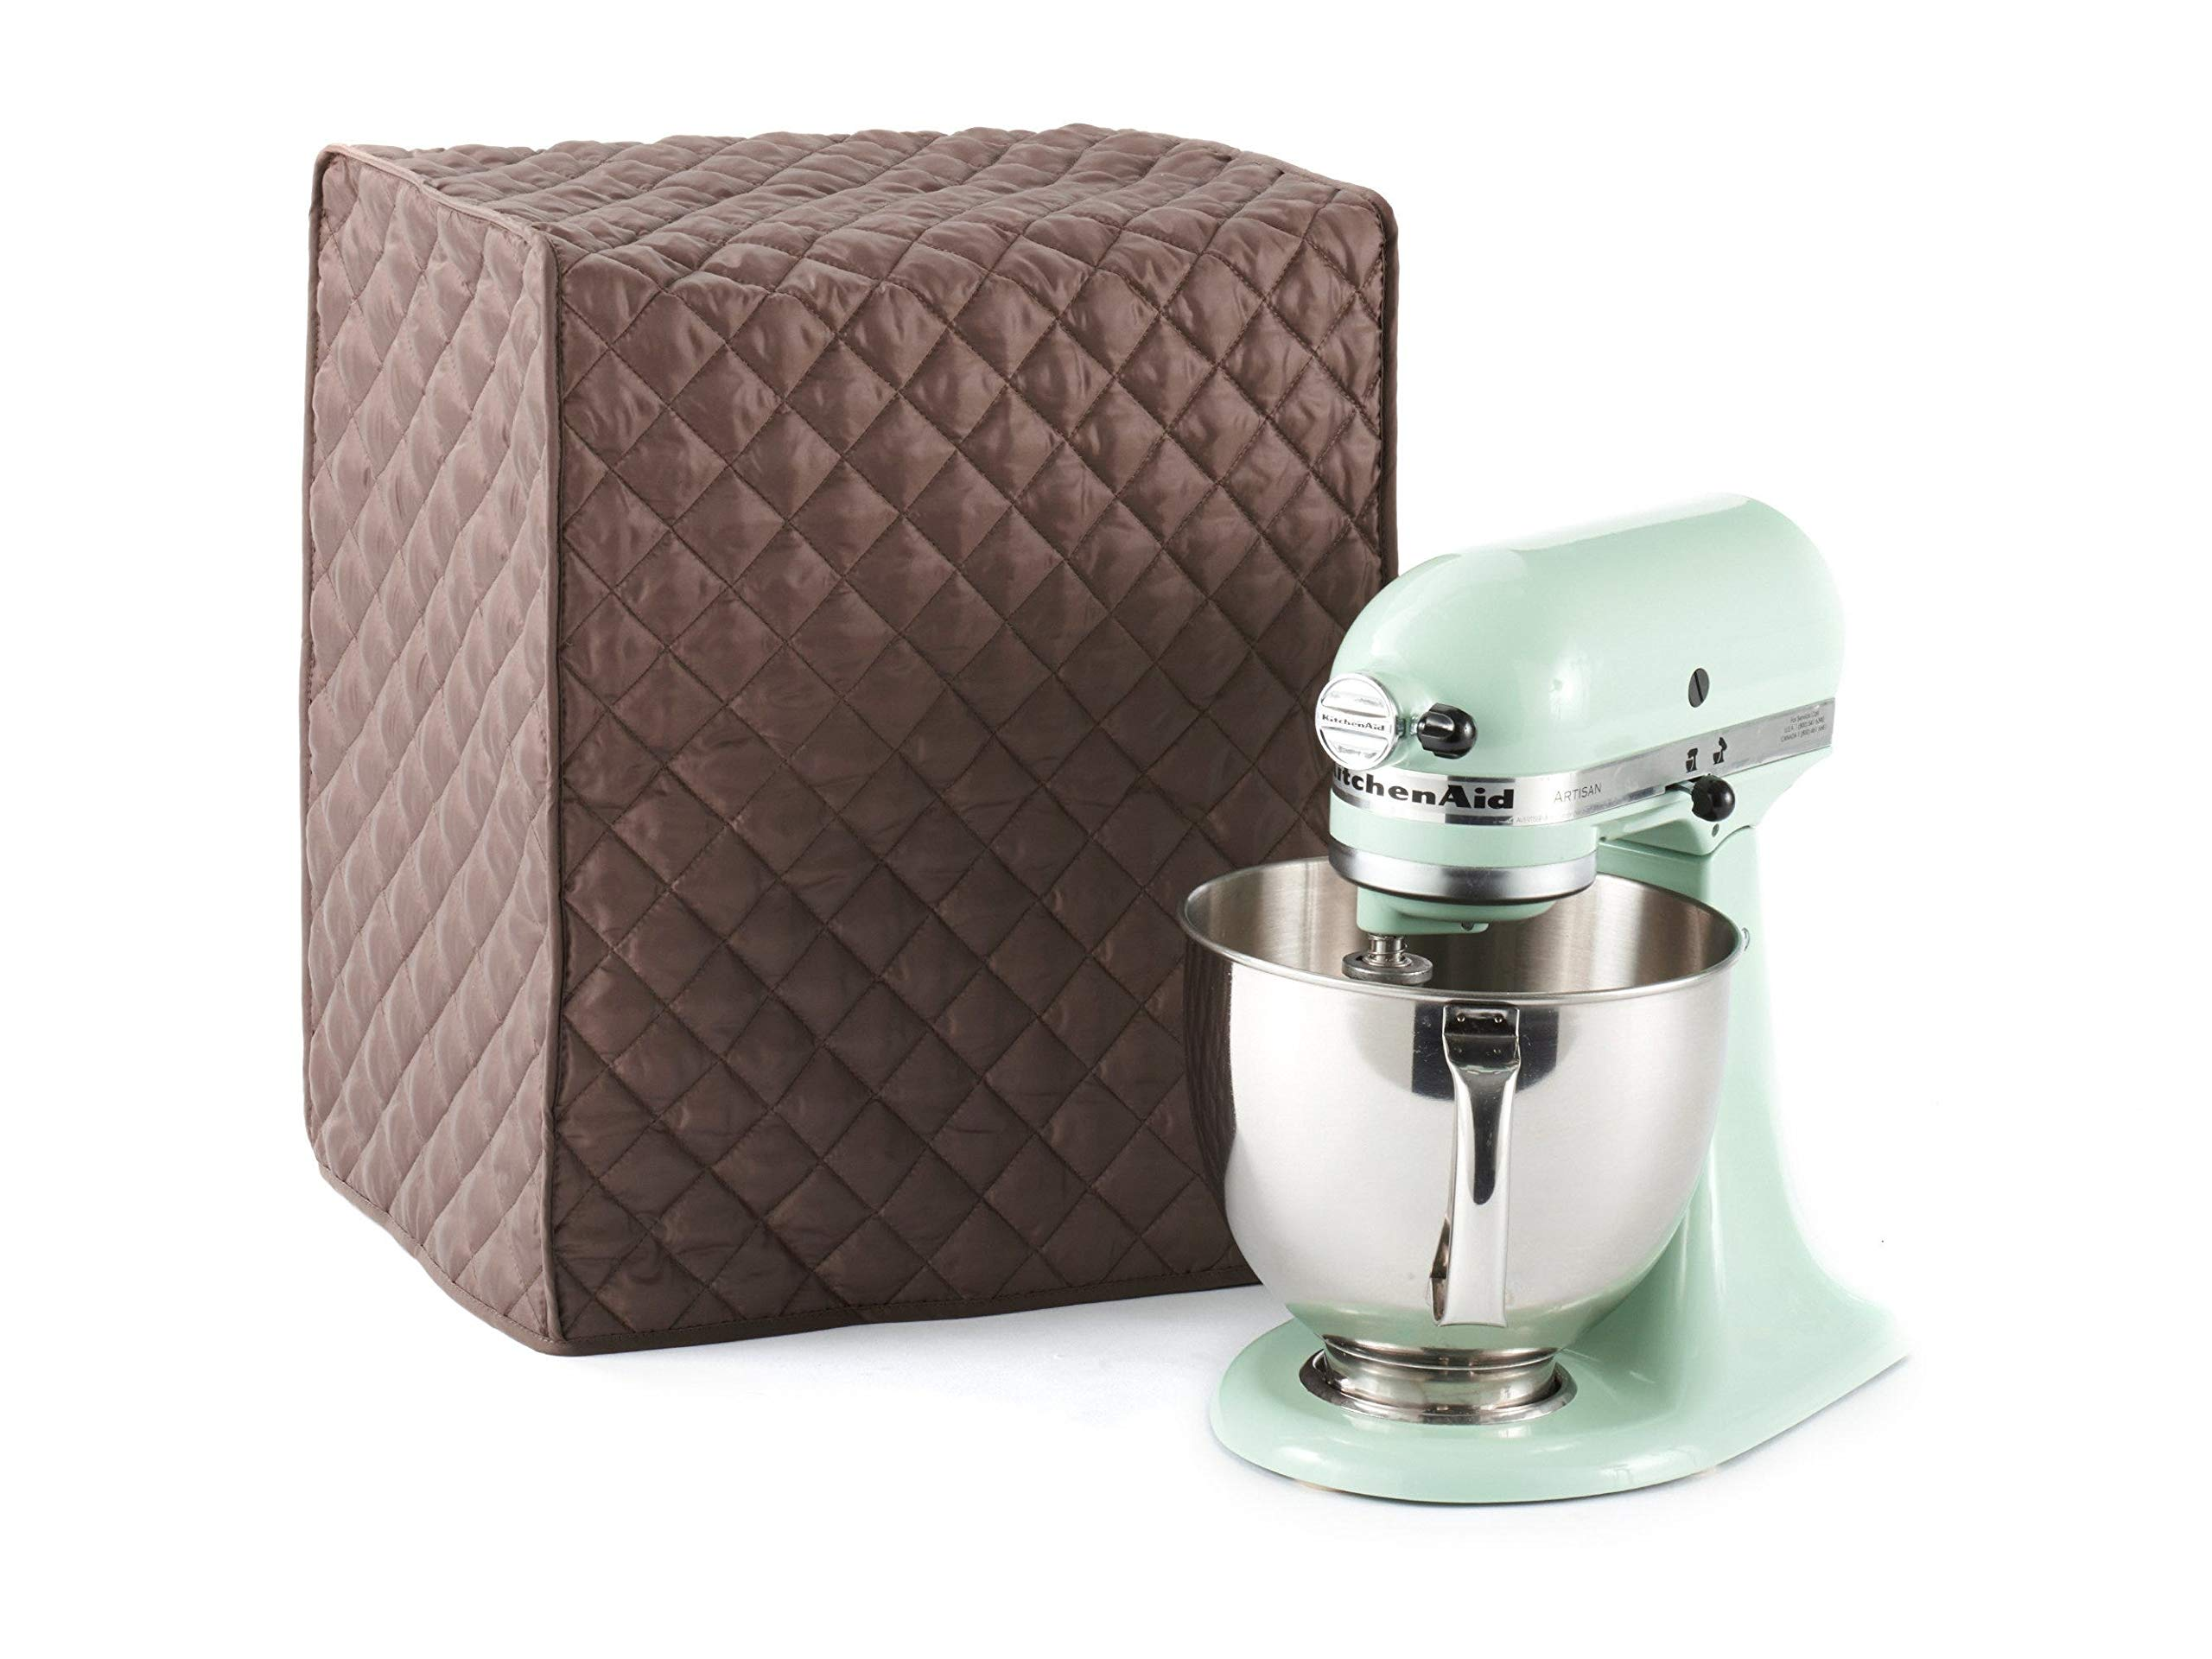 Covermates Keepsakes – Mixer Cover – Dust Protection - Stain Resistant - Washable – Appliance Cover - Bronze